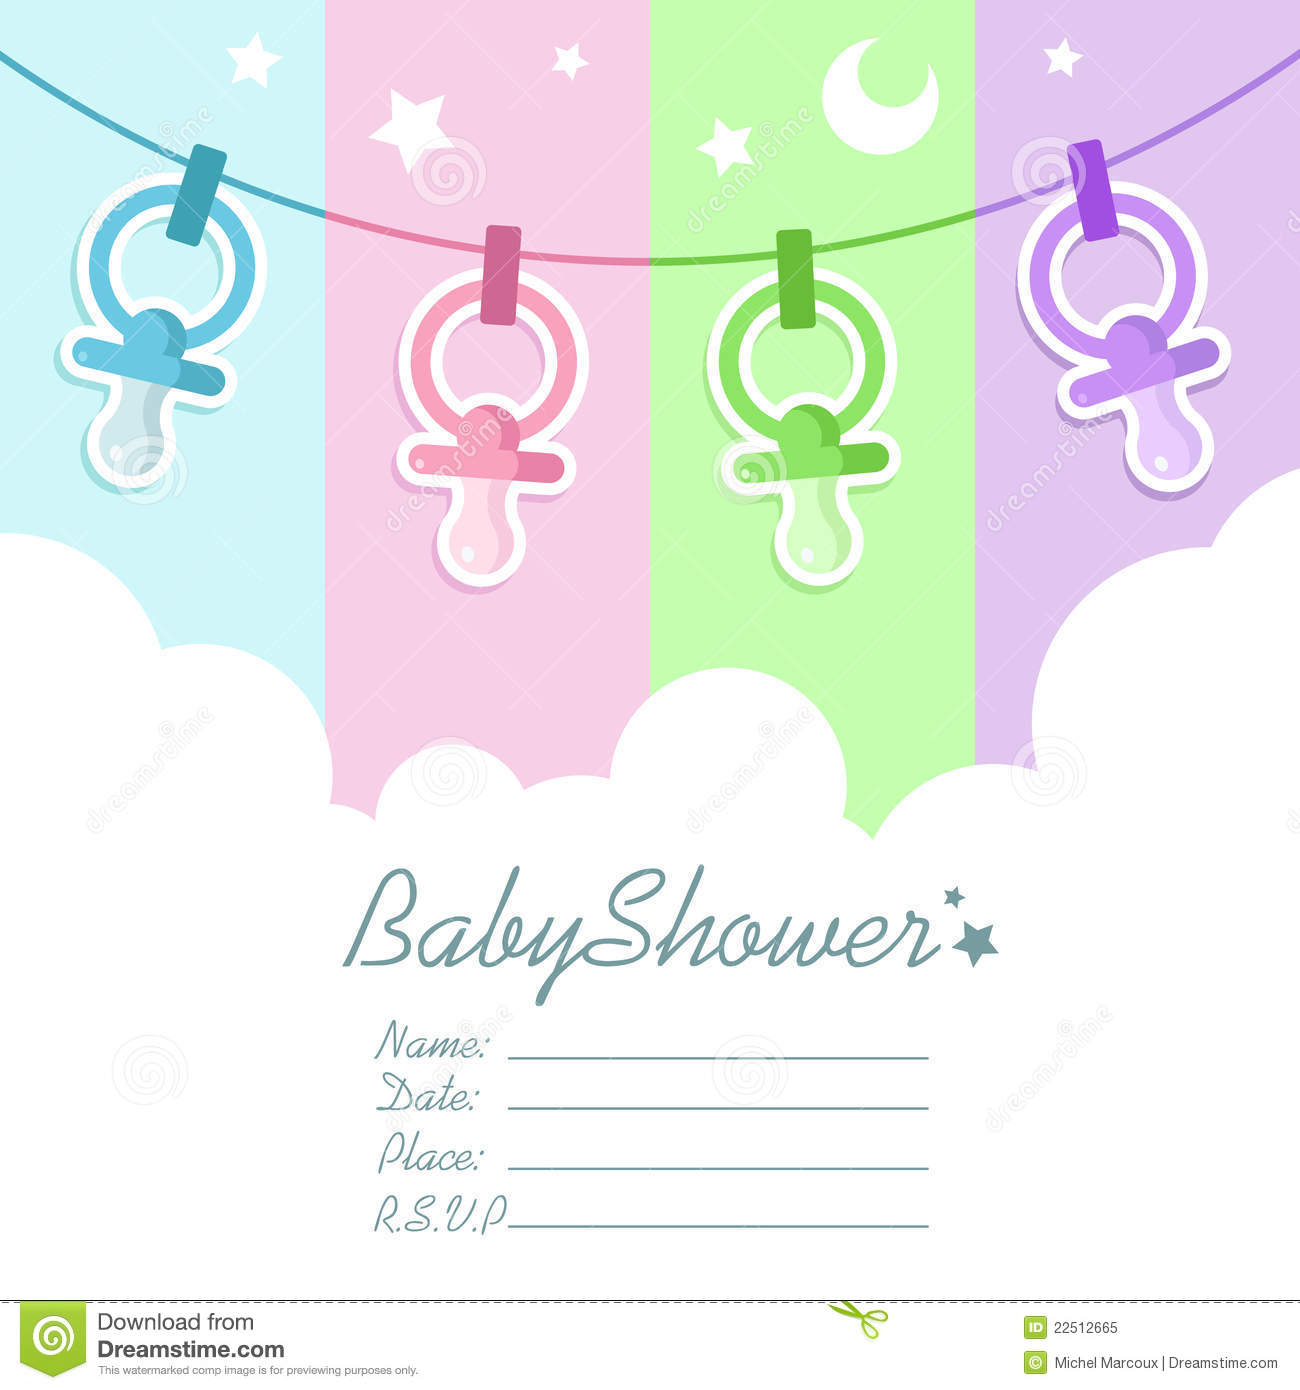 Baby Shower Invitation Card Royalty Free Stock Photo Image 22512665